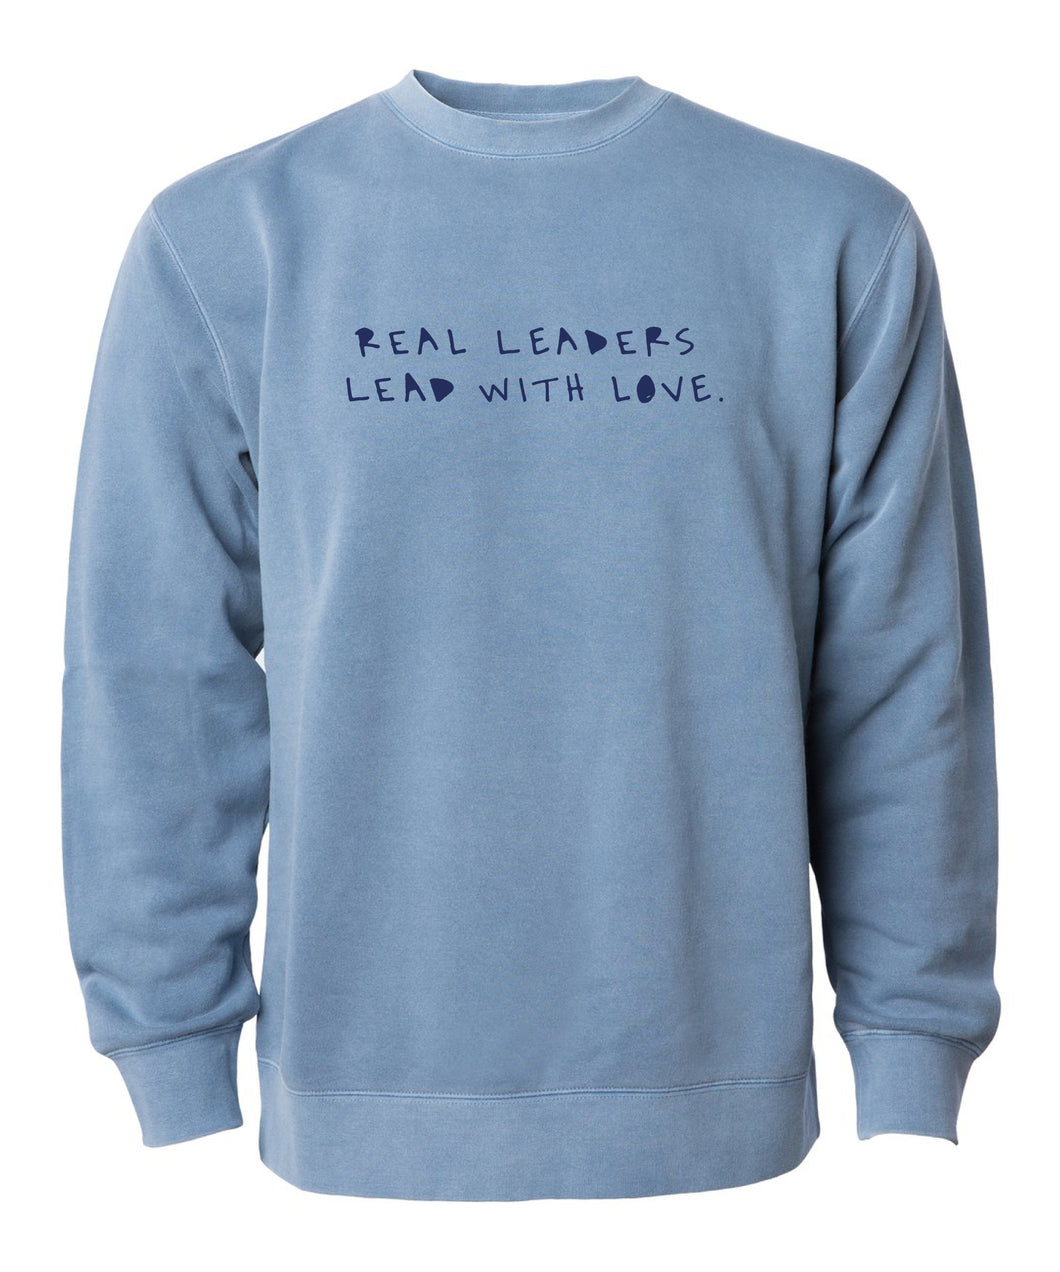 Real Leaders Embroidered Sweatshirt